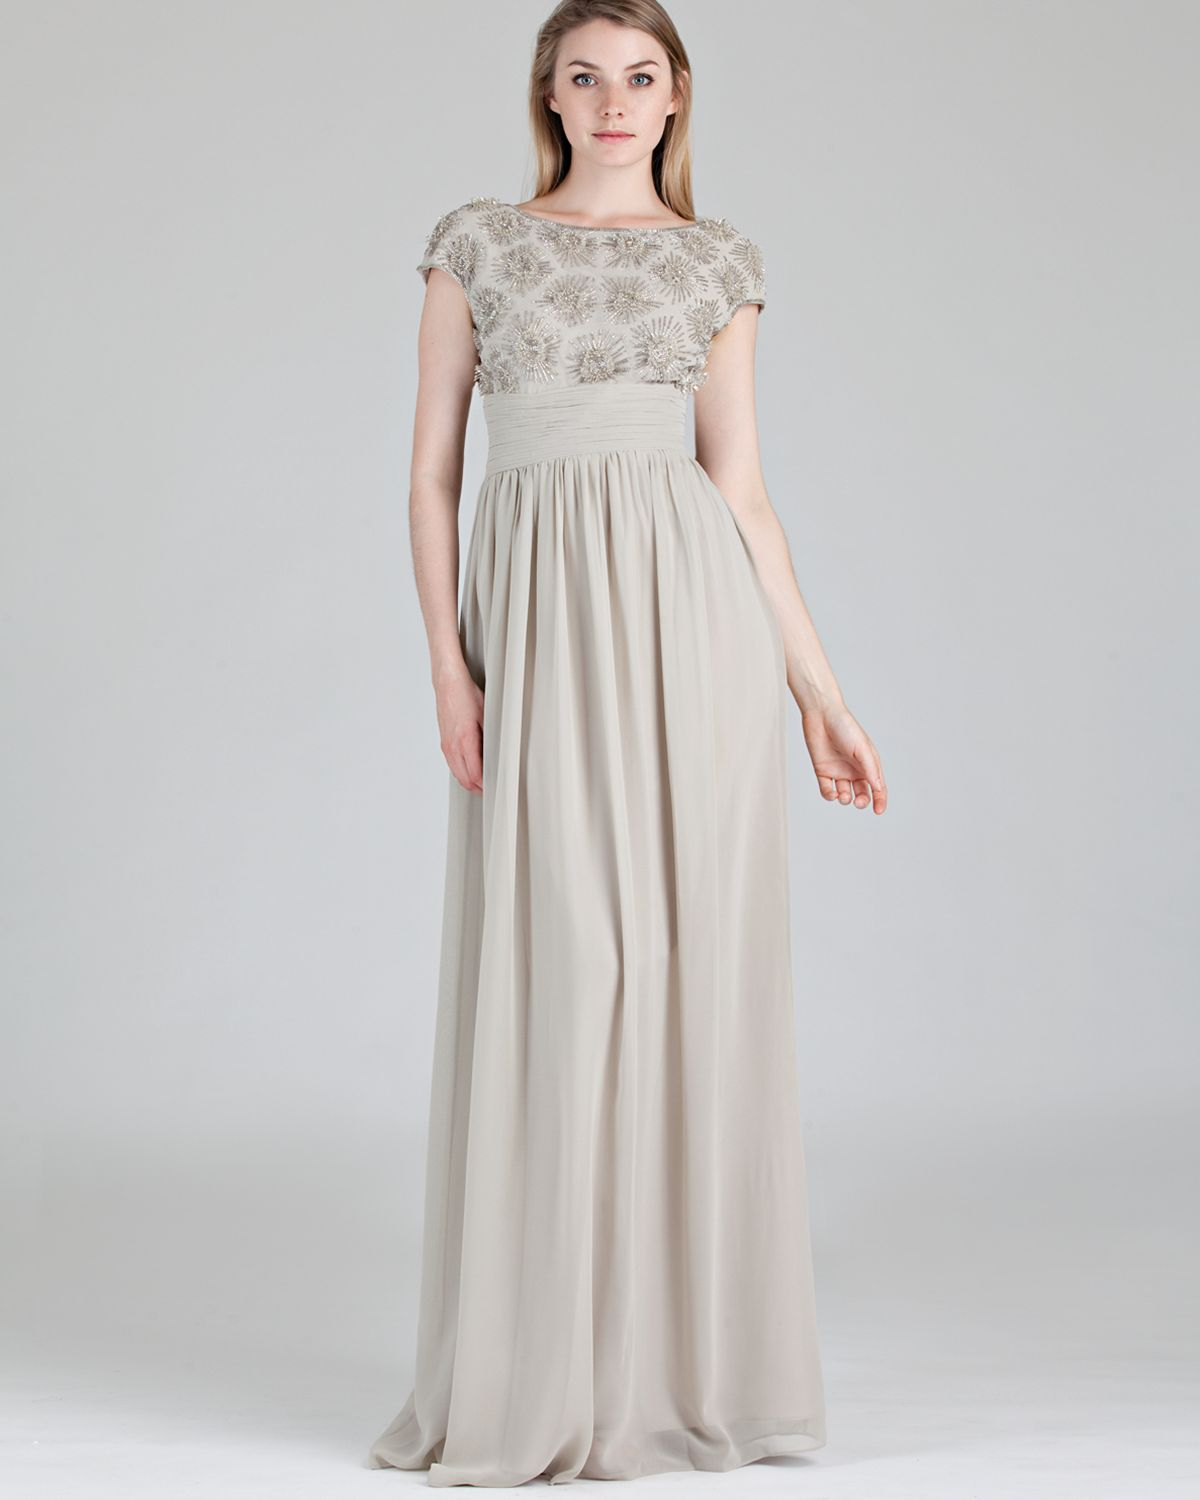 Js Collections Beaded Bodice Shirred Waist Gown - Cap Sleeve in Gray ...